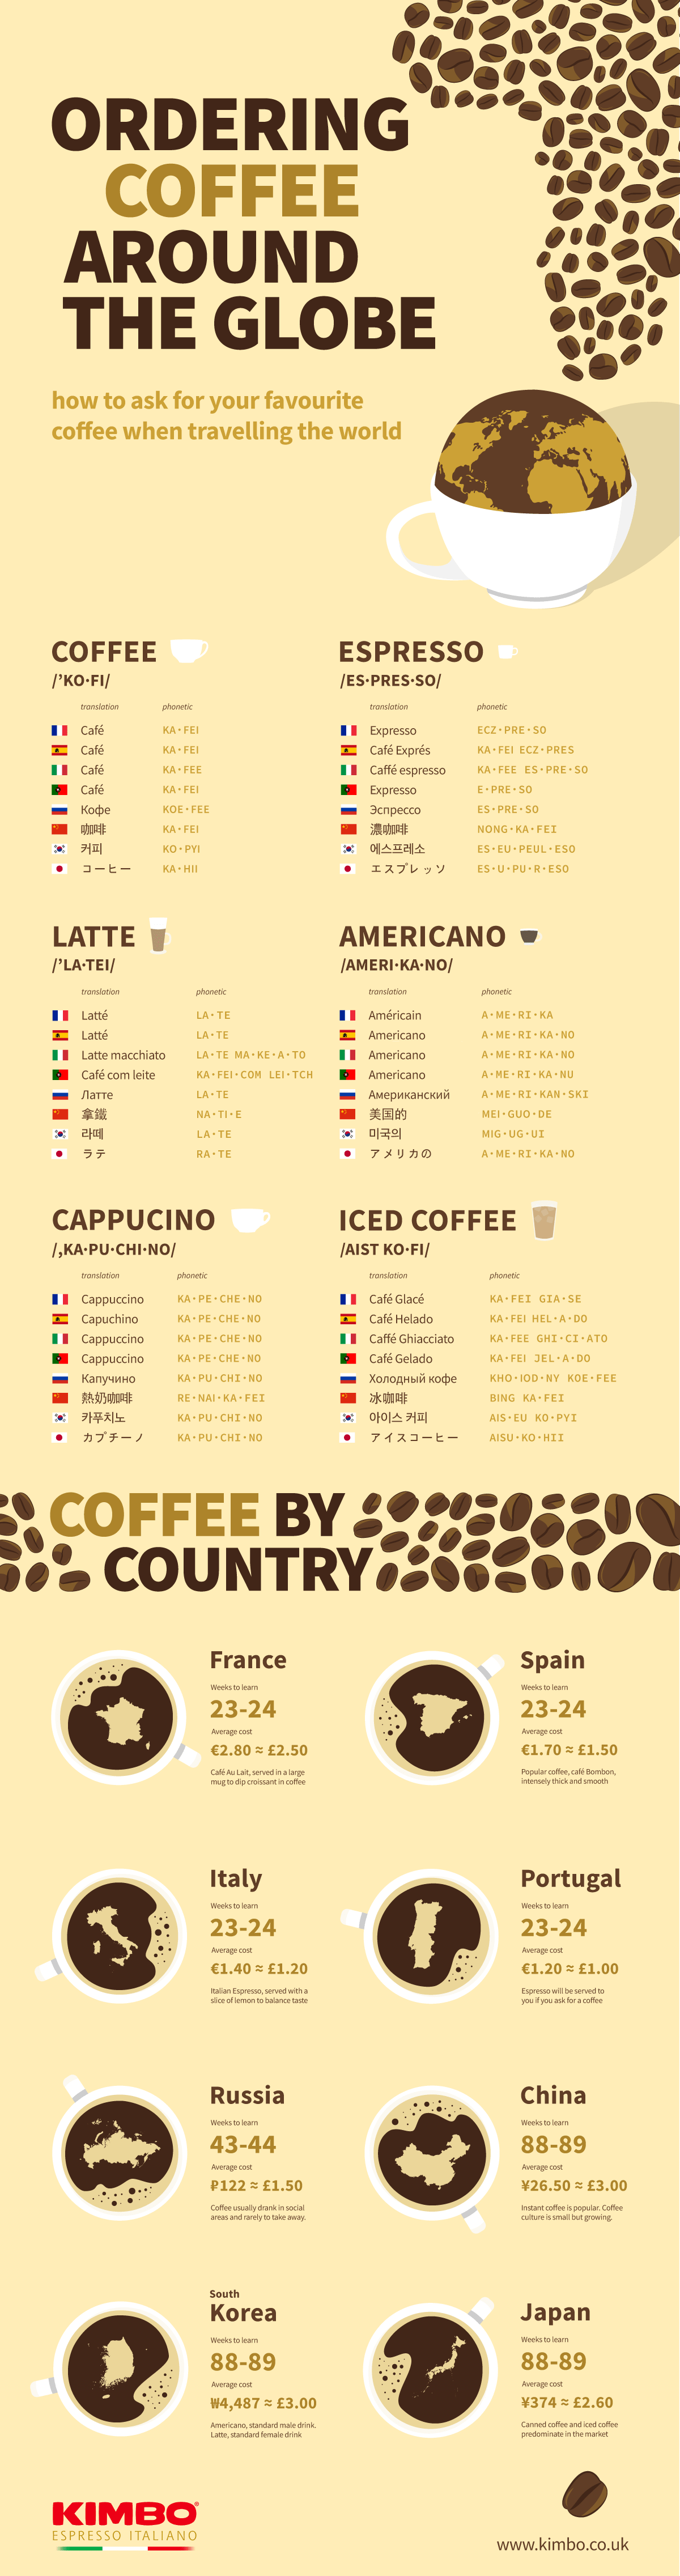 Ordering coffee around the globe